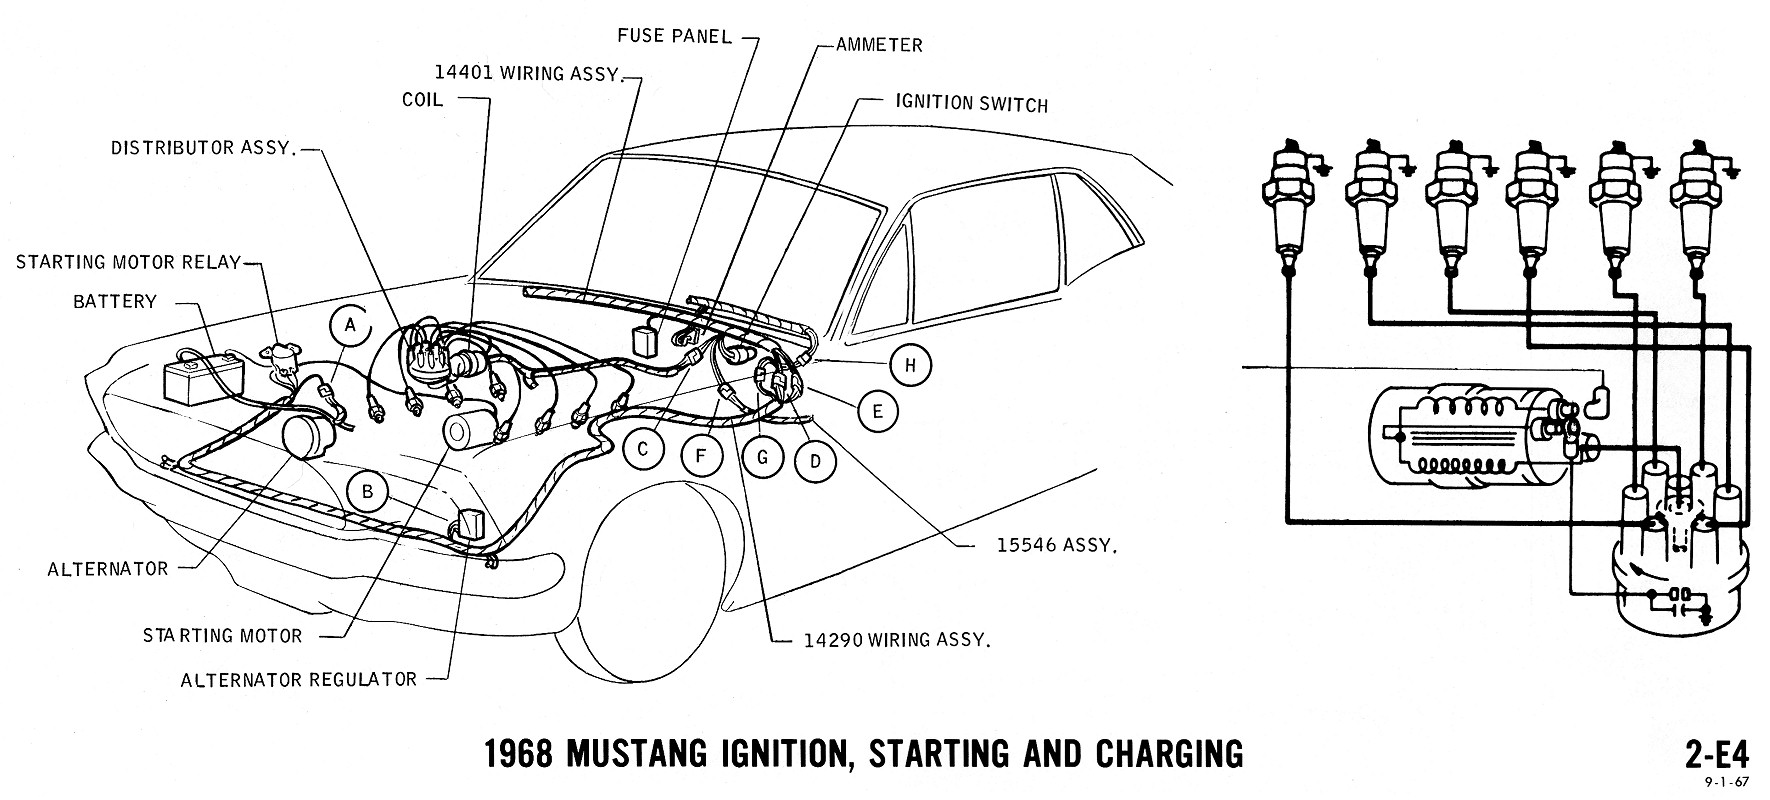 Mustang Wiring Diagram Ignition Starting Charging on 1970 Dodge Wiring Diagram